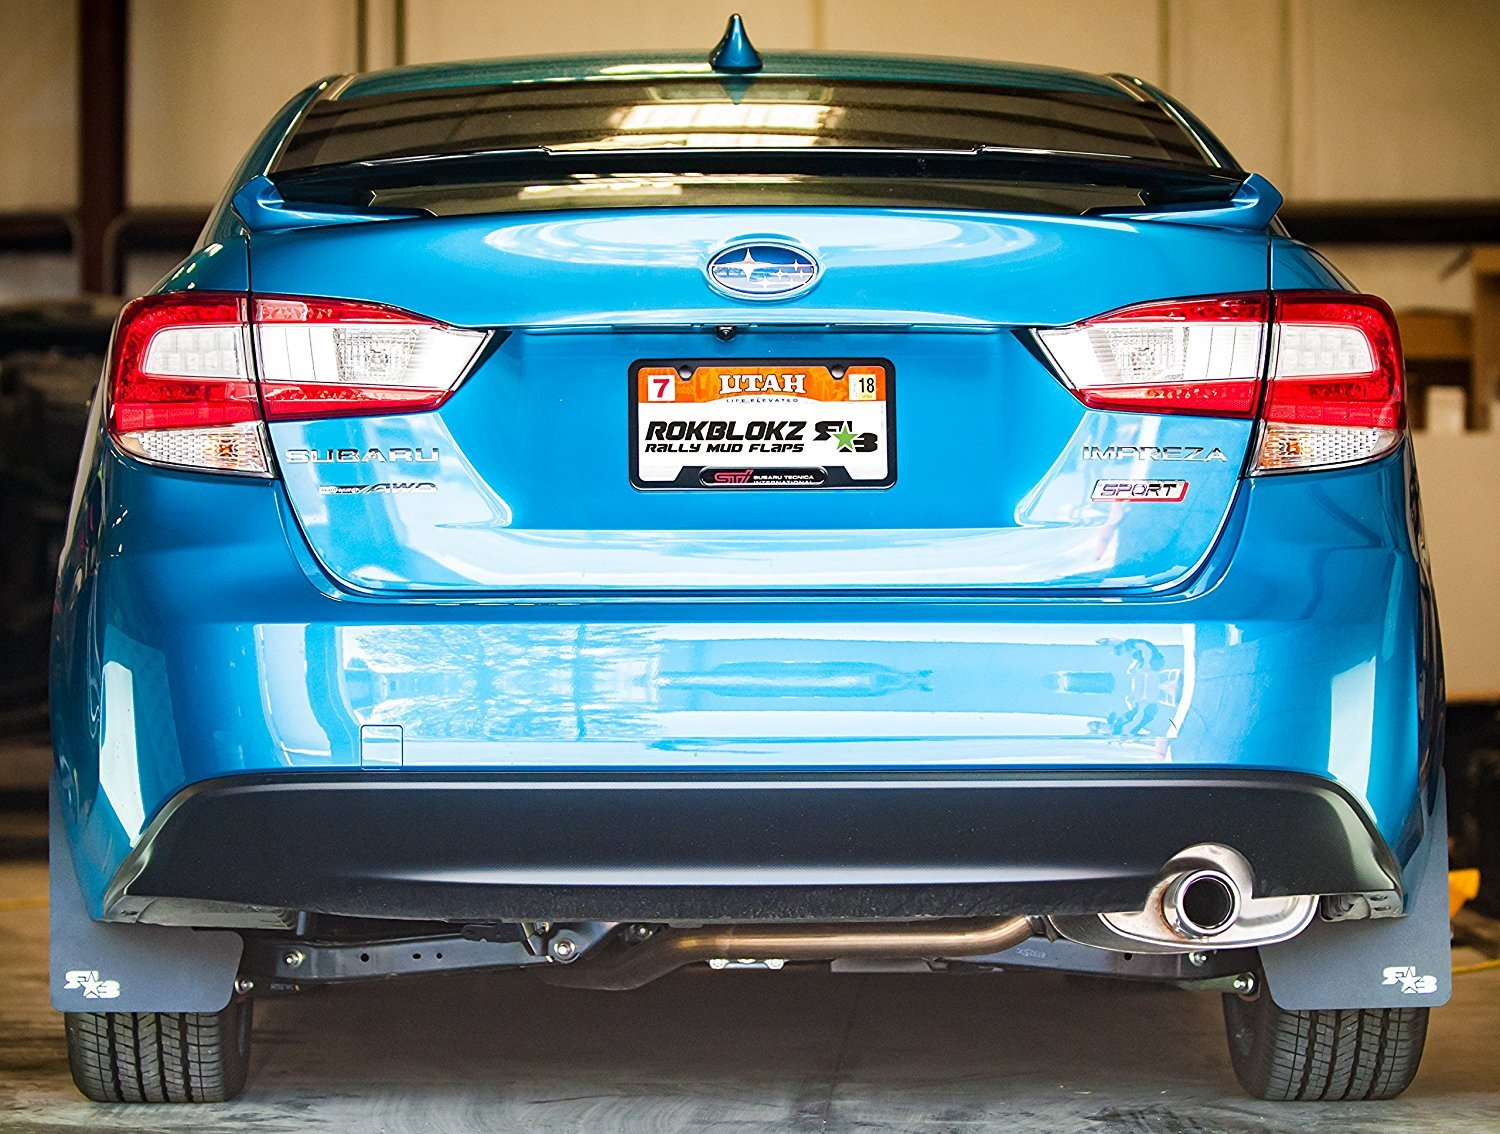 Includes All Mounting Hardware Mud Guards are Custom Cut and Fit Black with Black Logo, Original Subaru Impreza RokBlokz Mud Flaps for 2017 Multiple Colors Available